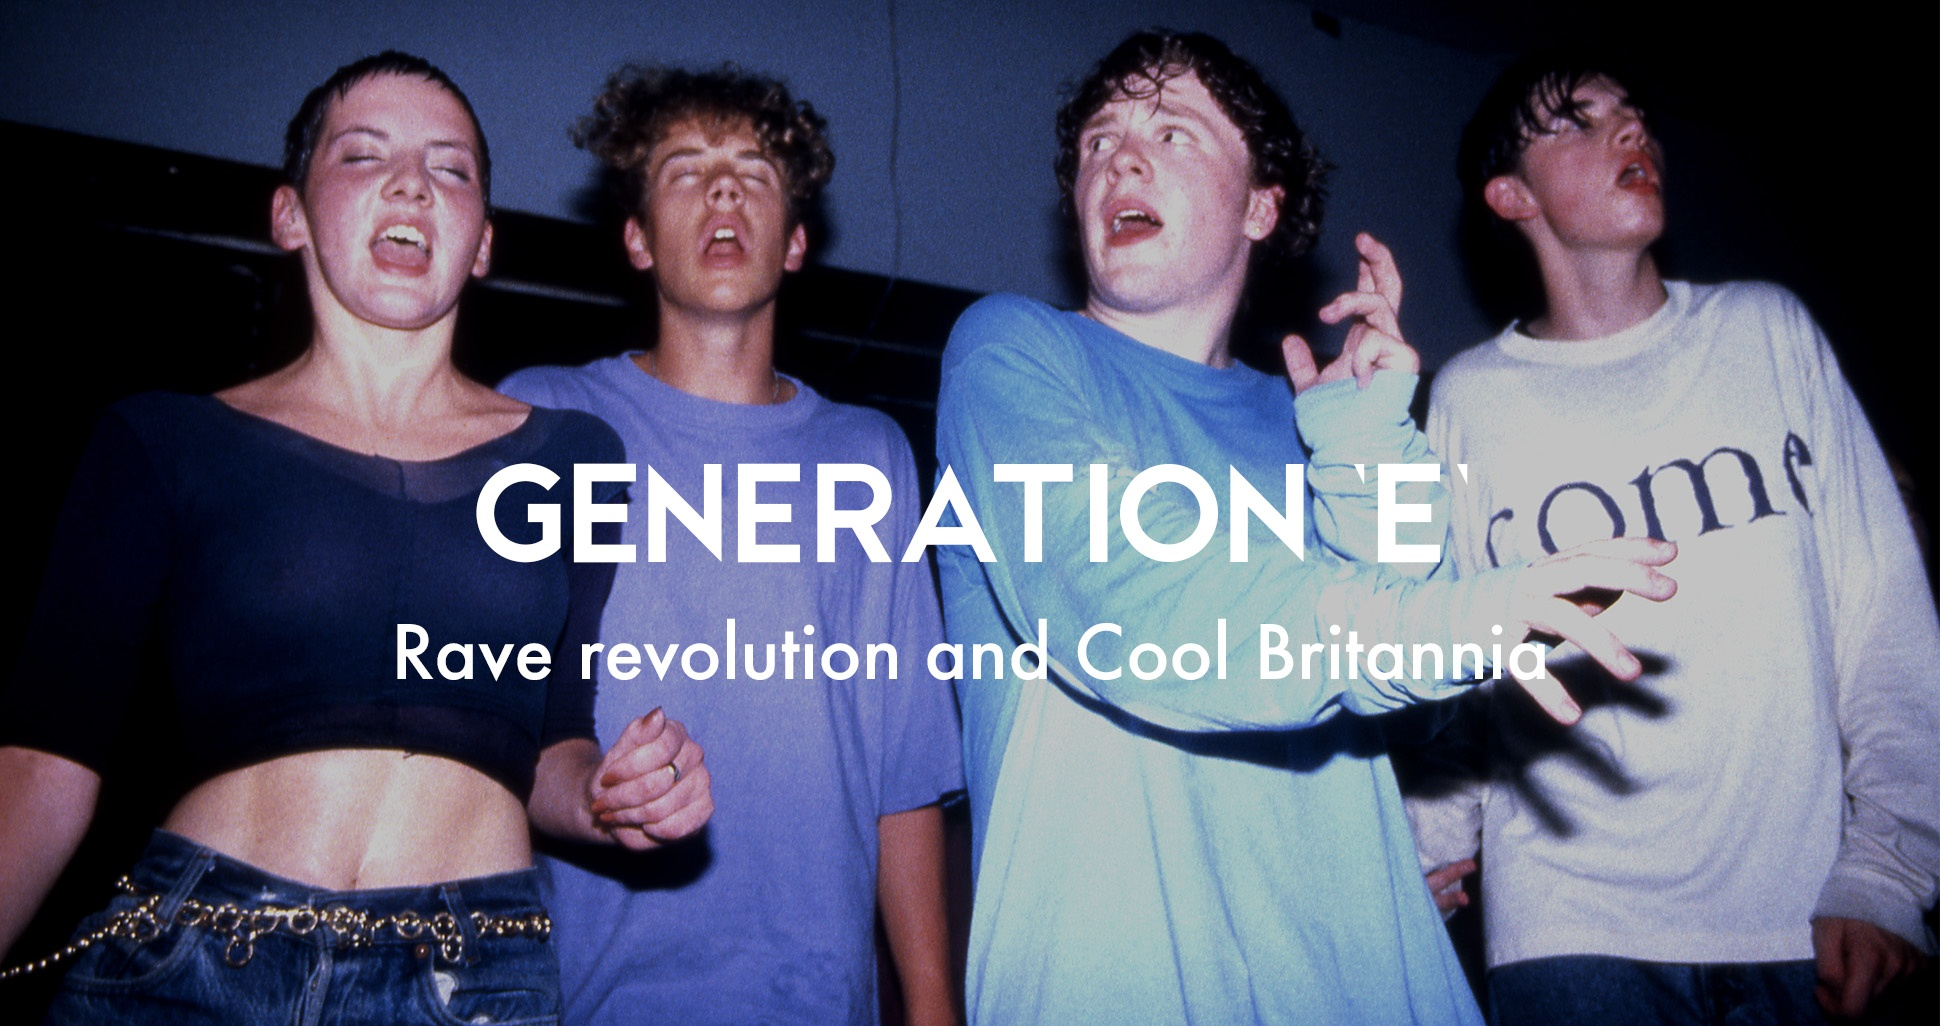 The history of British youth culture: Generation E, rave revolution and cool Britannia